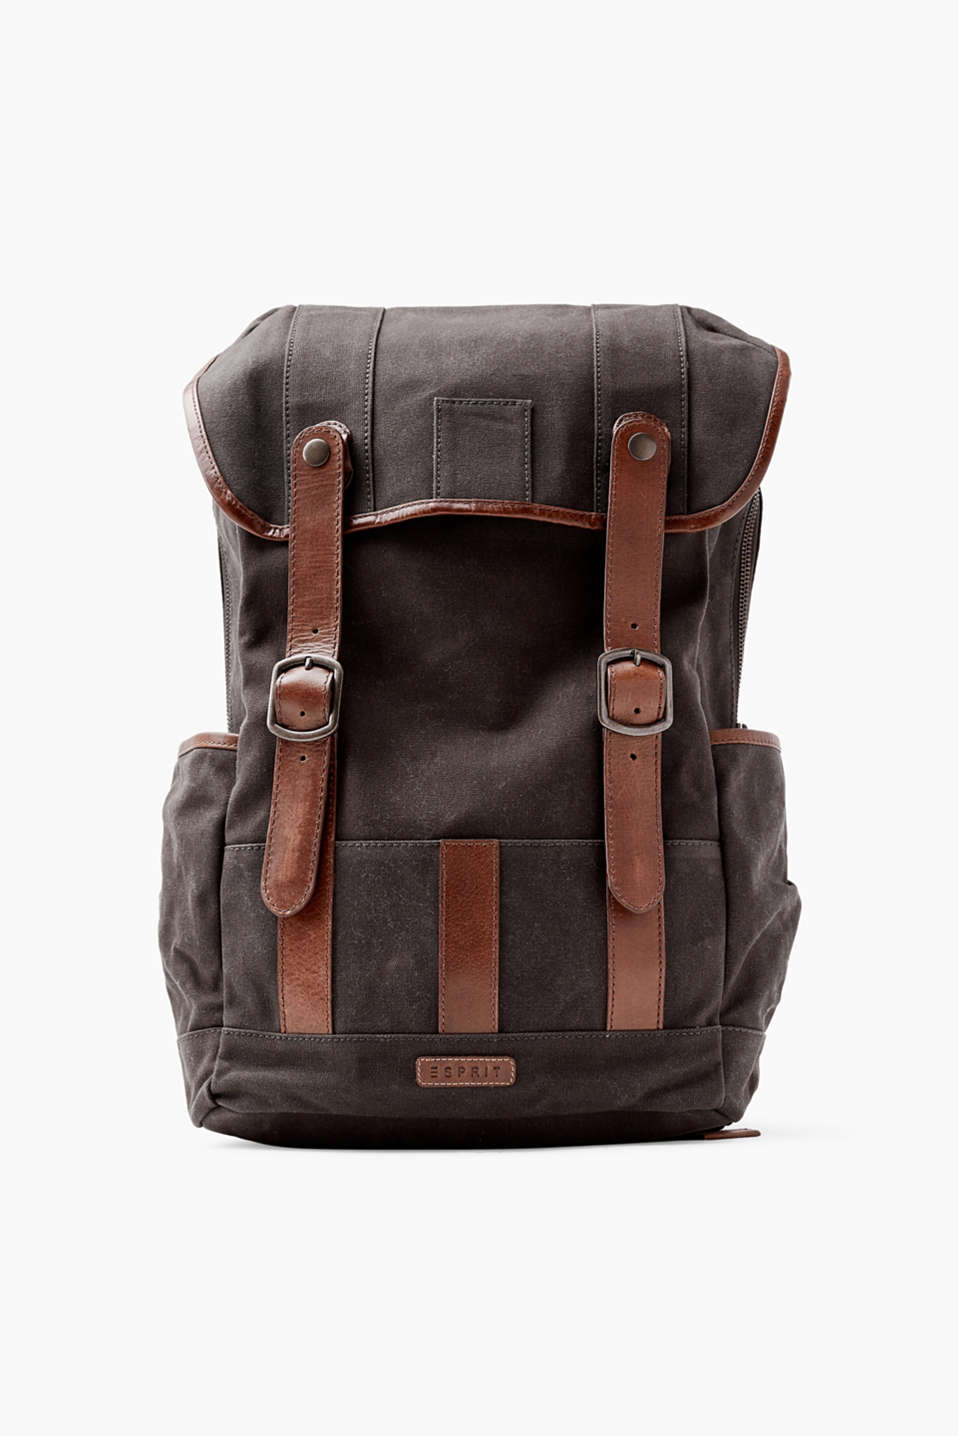 Pure cotton rucksack with leather detailing and a built-in laptop compartment